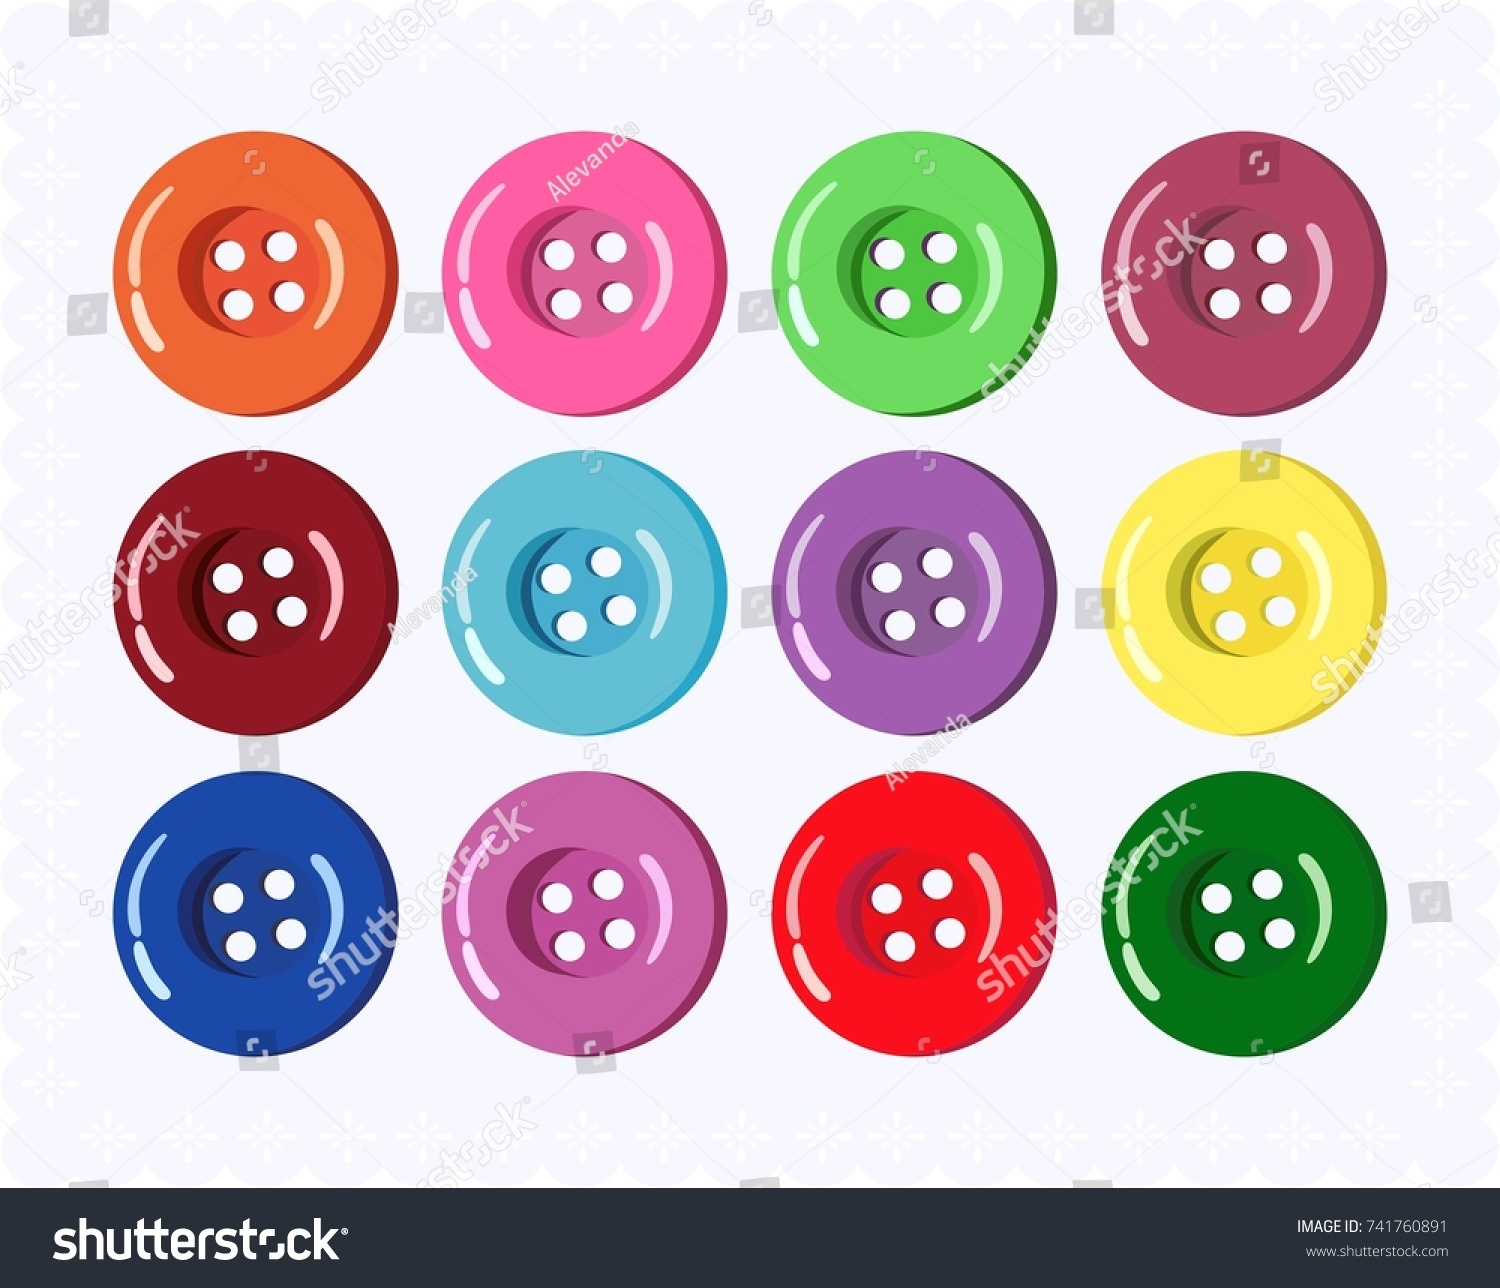 Vector collection of buttons for clothes, art and crafts in various bright colors. Fashion and needlework. #741760891